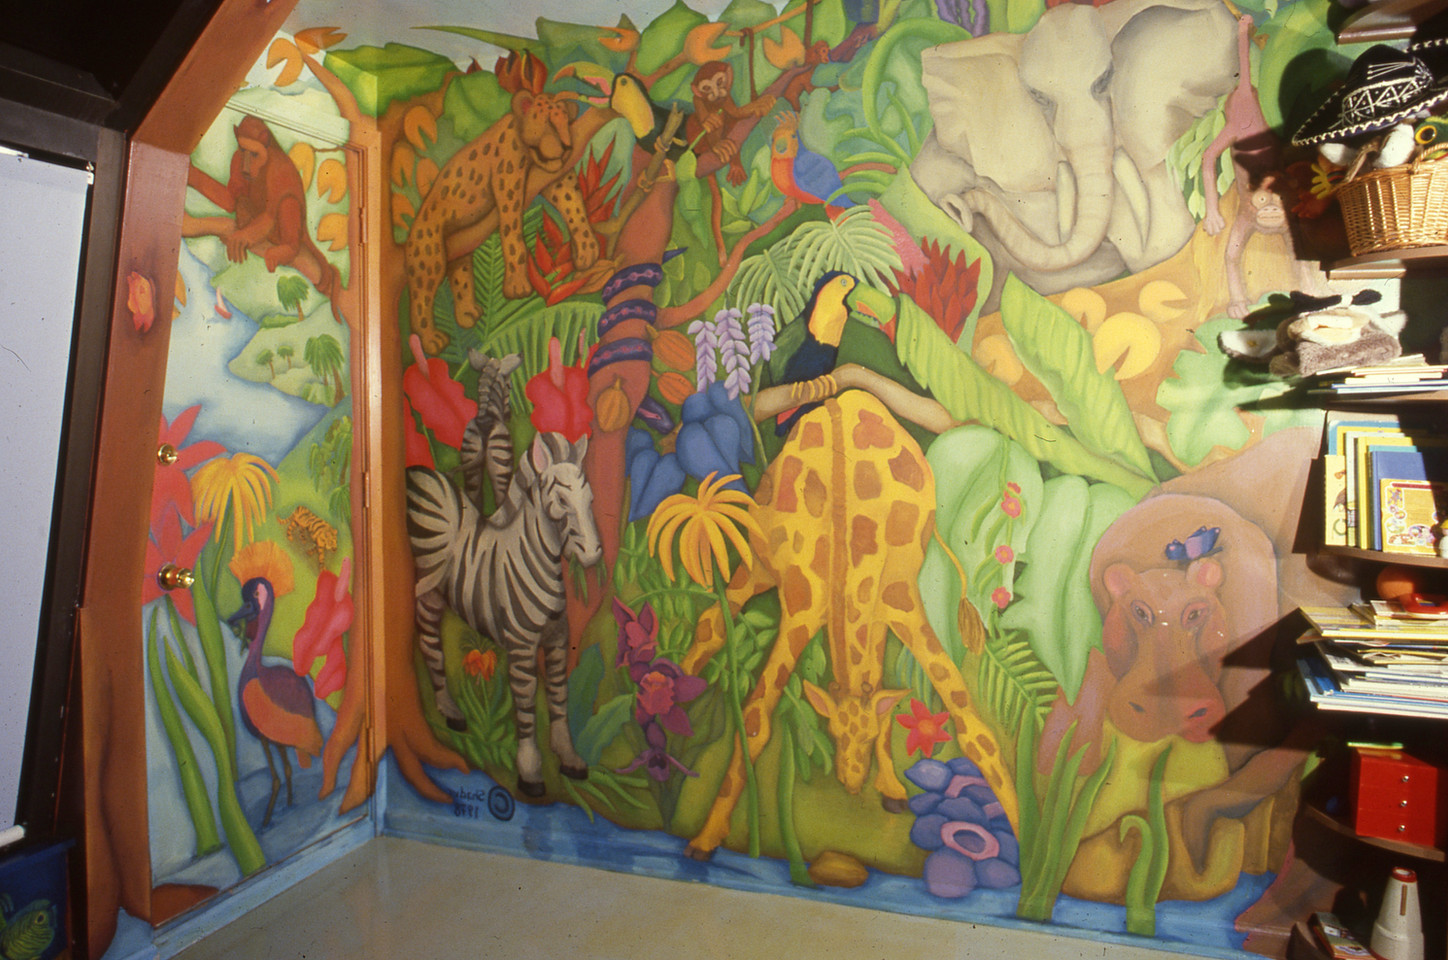 Private home, children's mural, Chicago IL. Whole room decorated including furniture